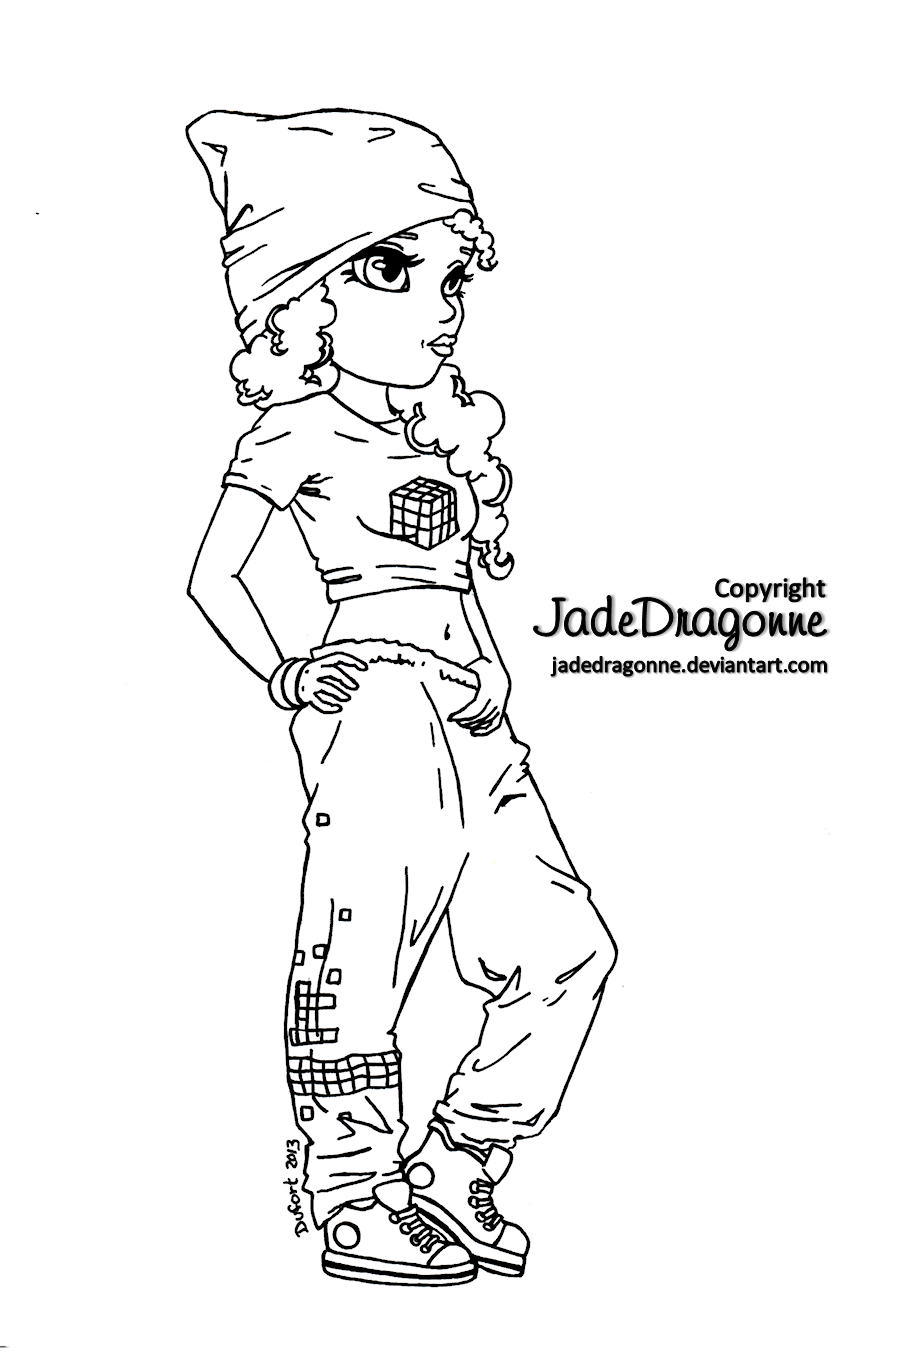 hip hop dancer lineart by jadedragonne deviantart on